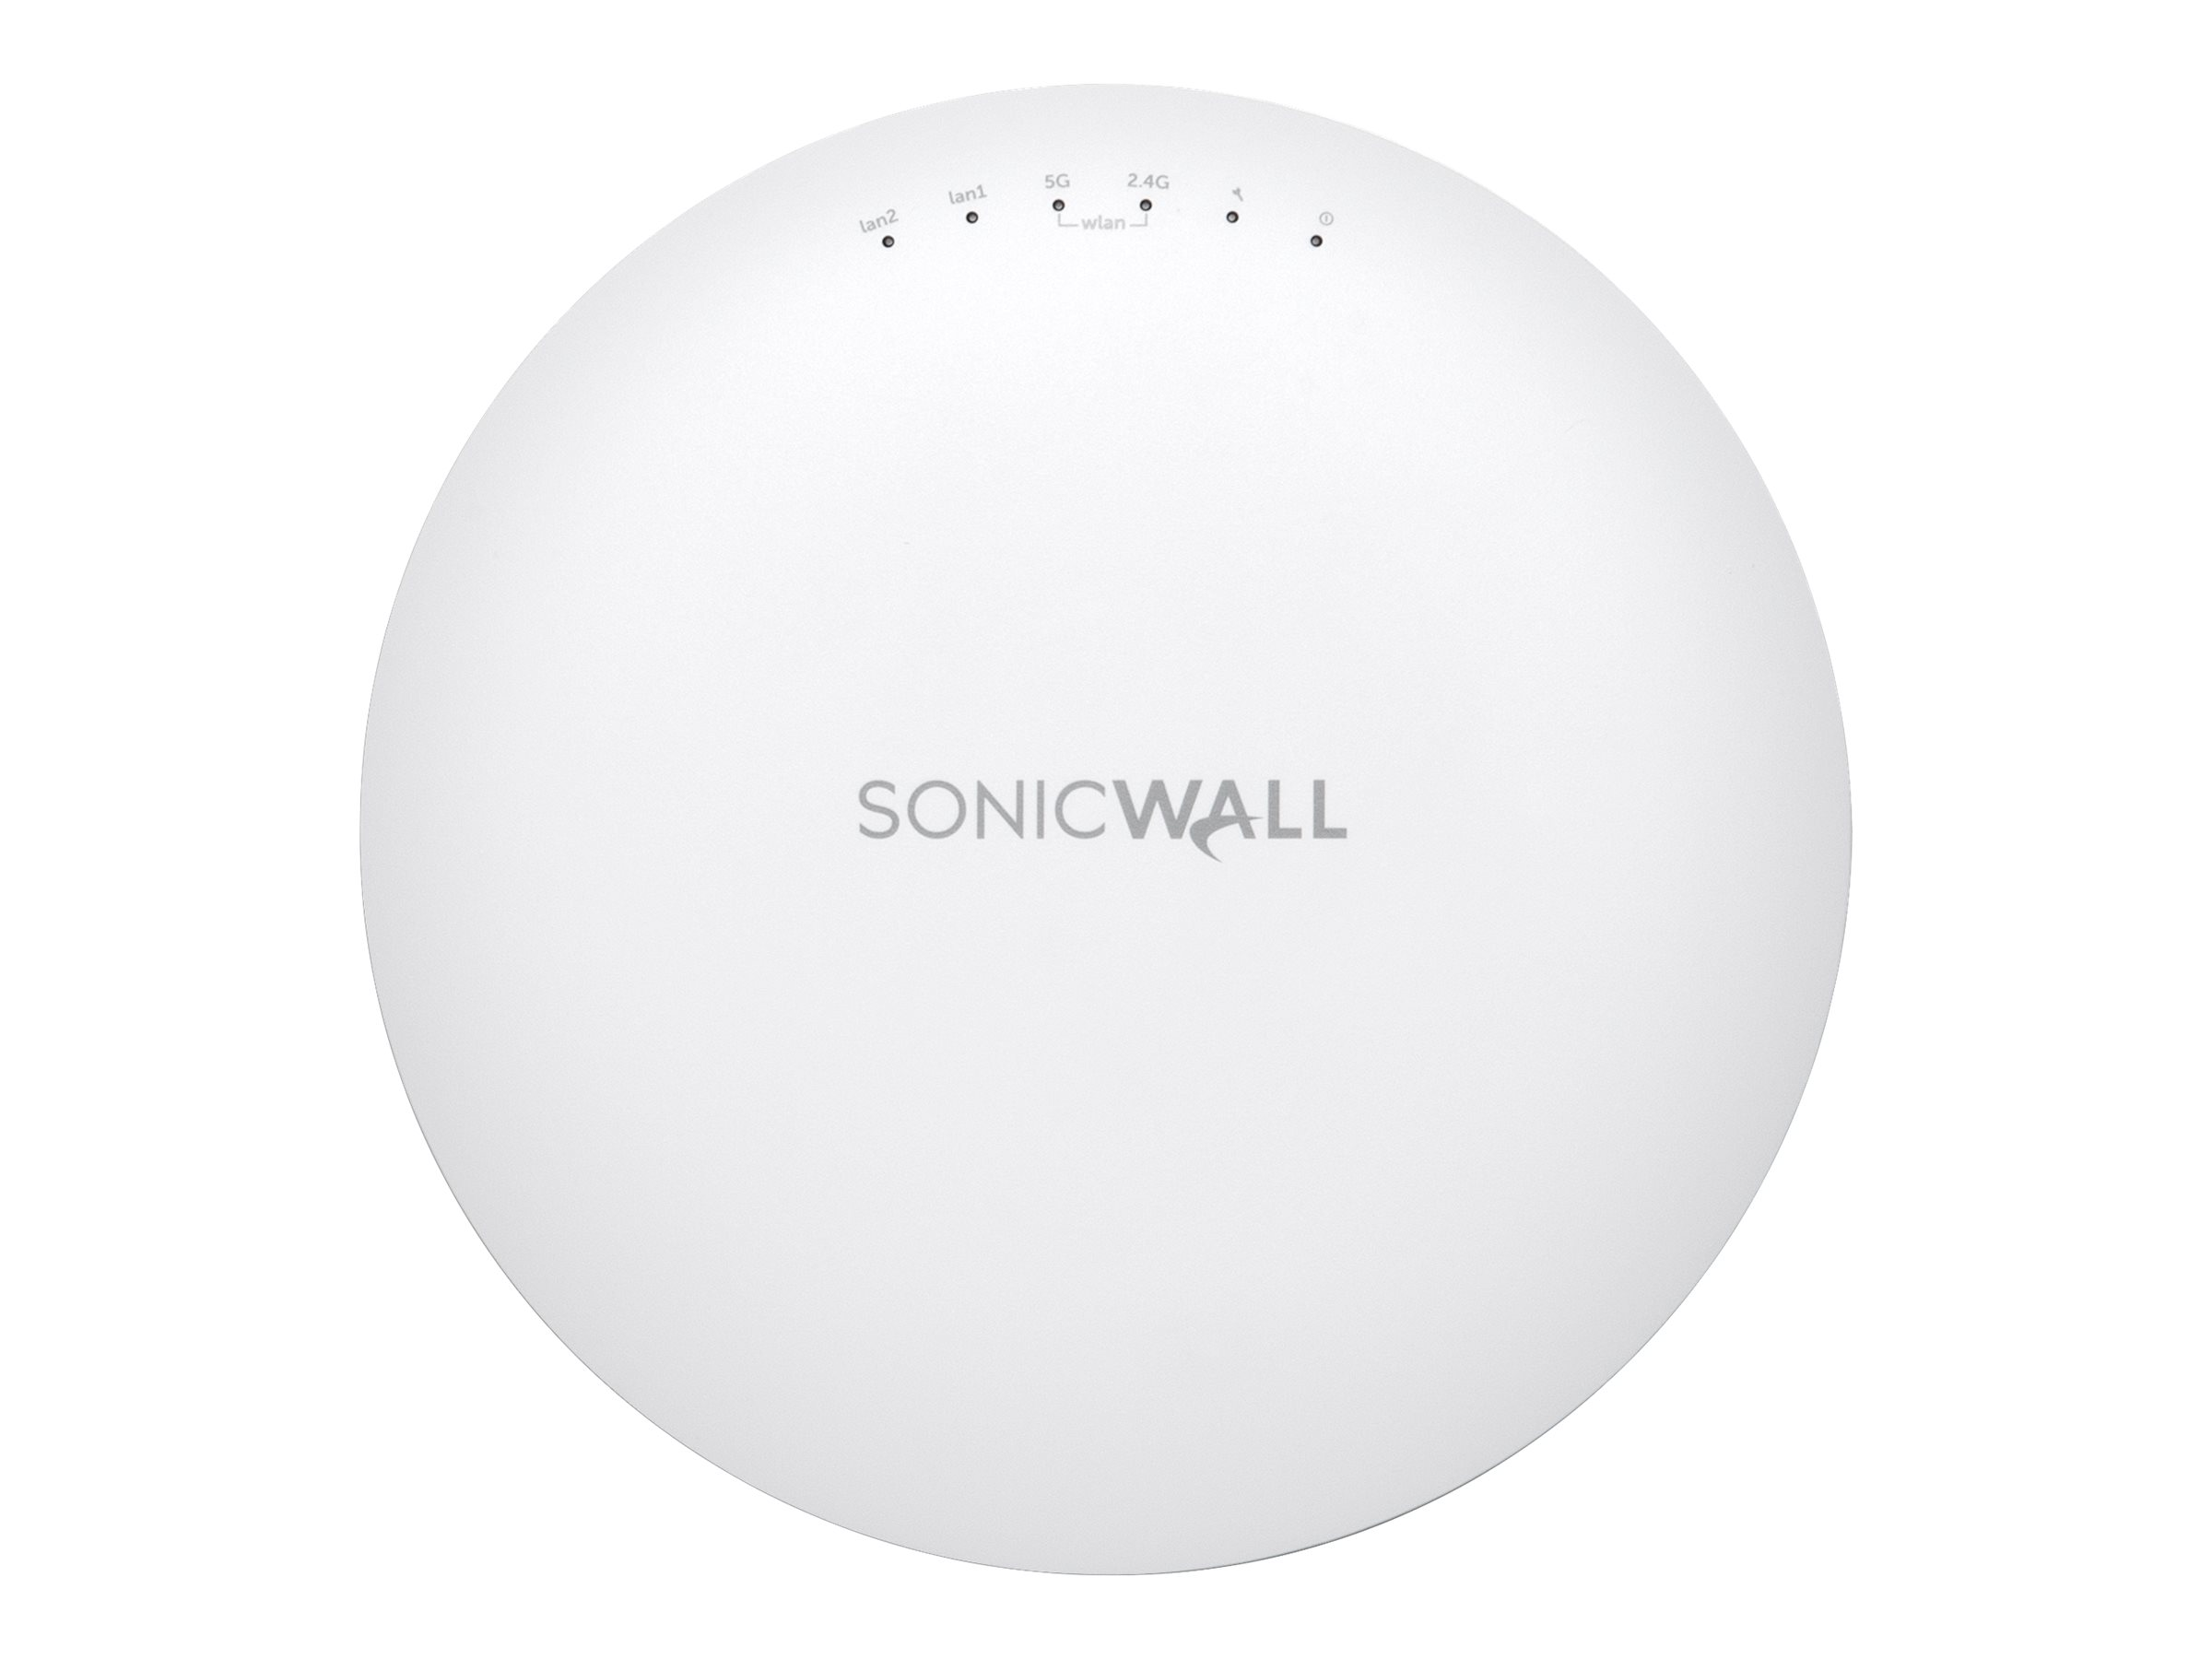 SonicWall SonicWave 432i - wireless access point - with 3 years Advanced Secure Cloud WiFi Management and Support